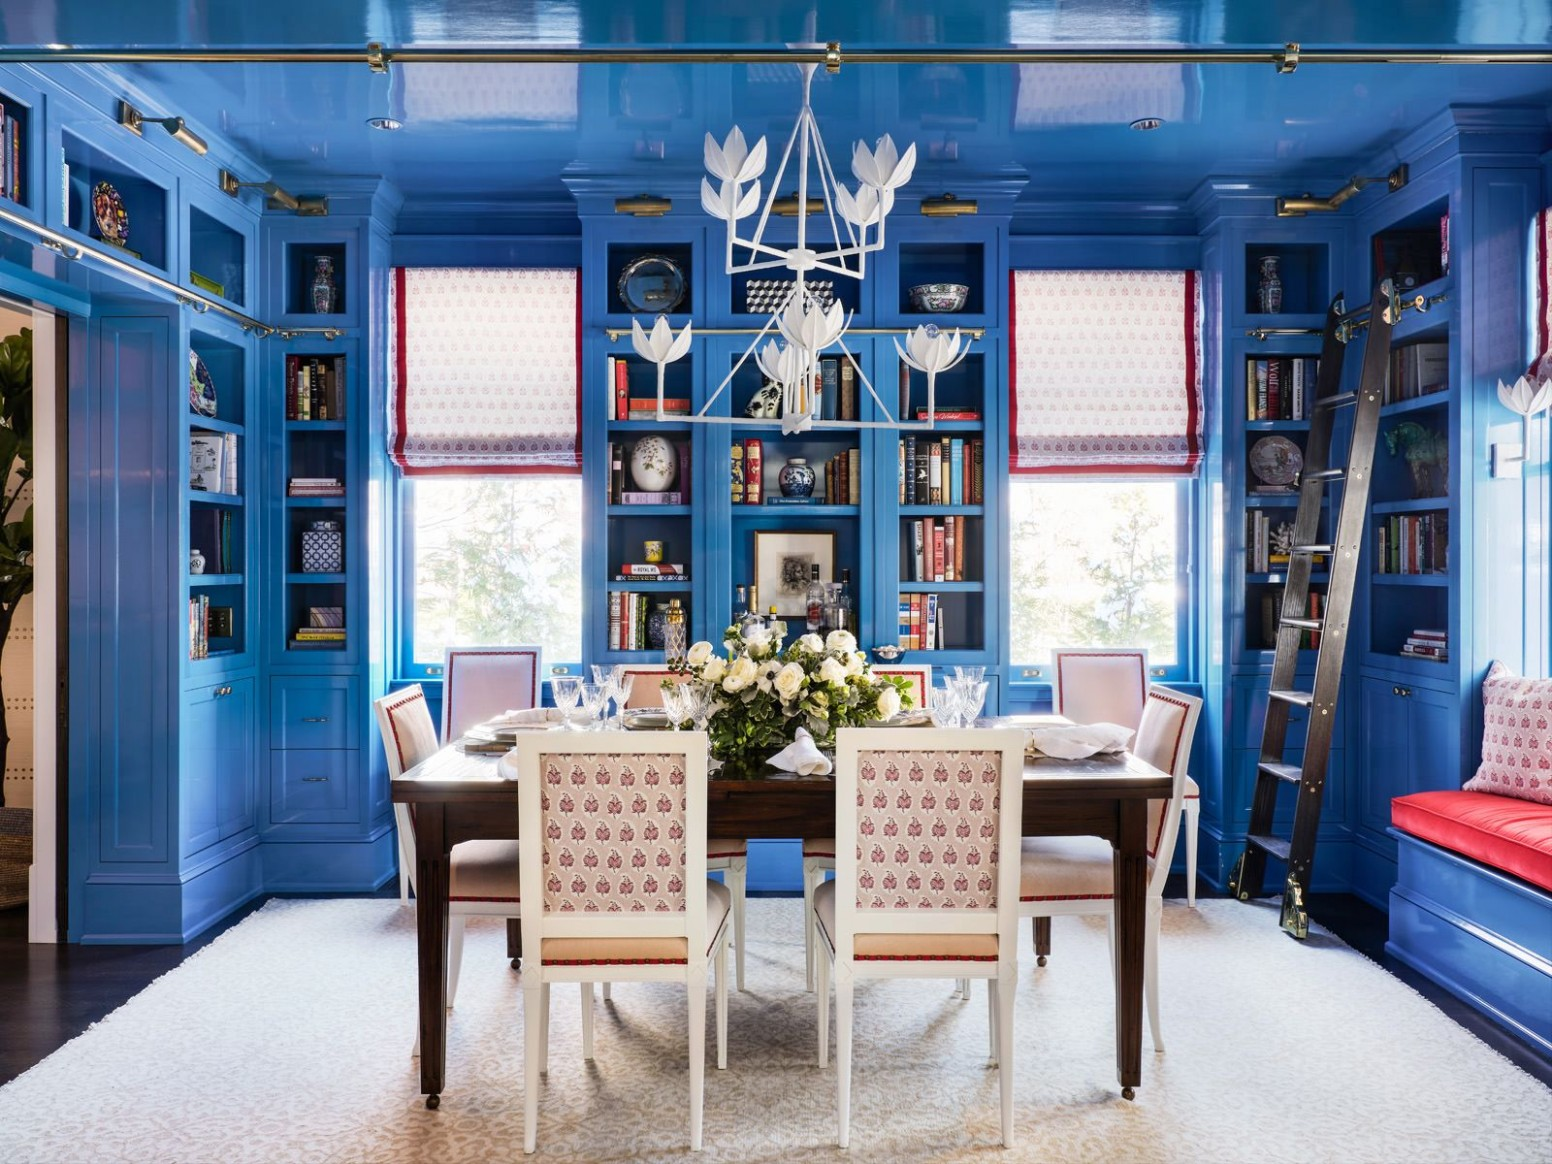 12 Best Dining Room Decorating Ideas, Furniture, Designs, and Pictures - Dining Room Update Ideas